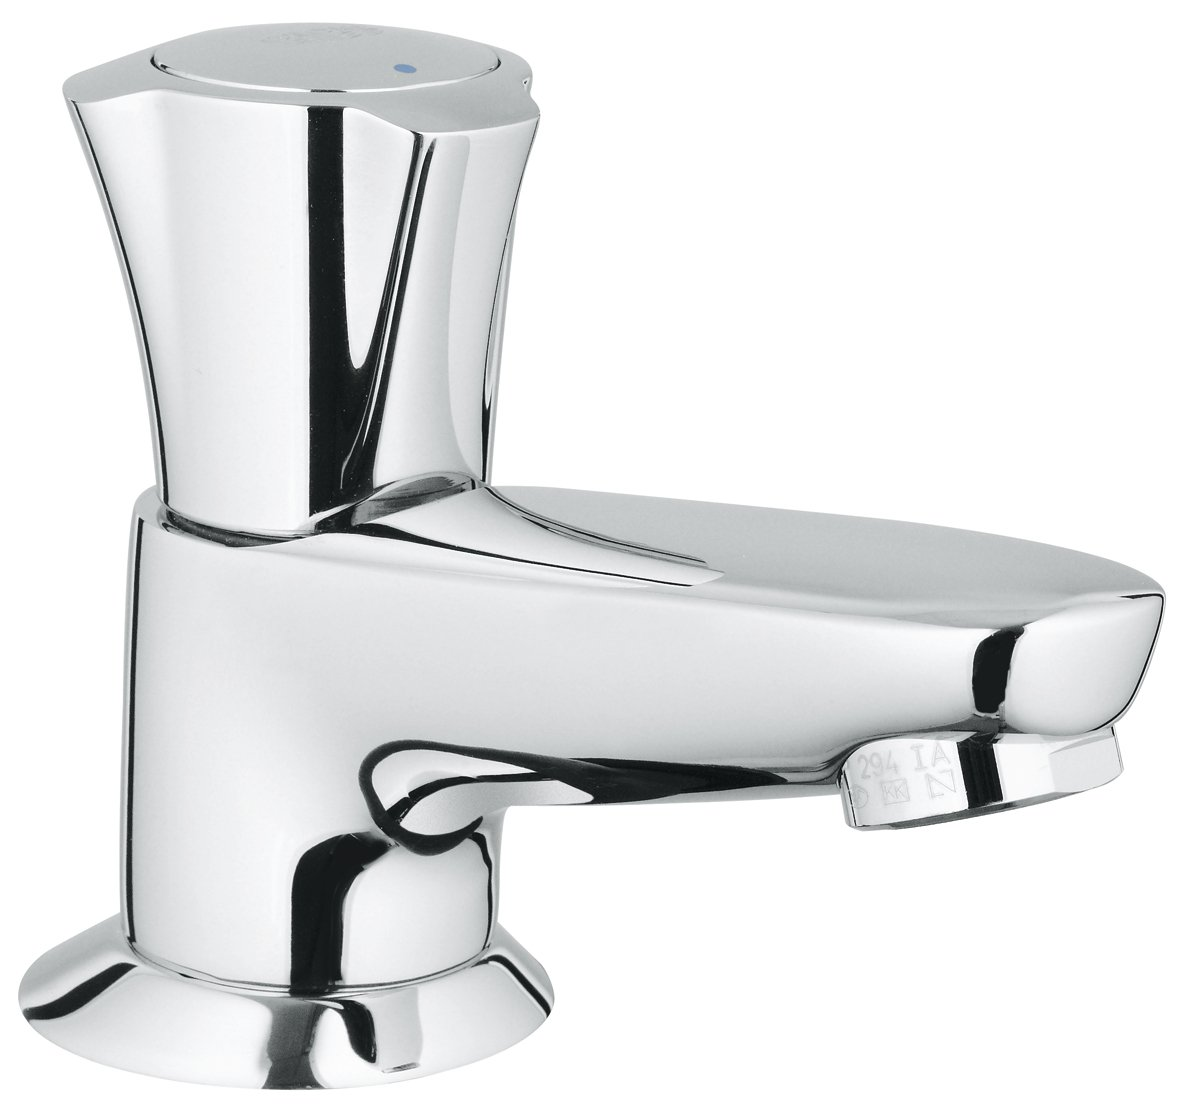 GROHE Robinet Lavabo Costa L 20404001 Import Allemagne